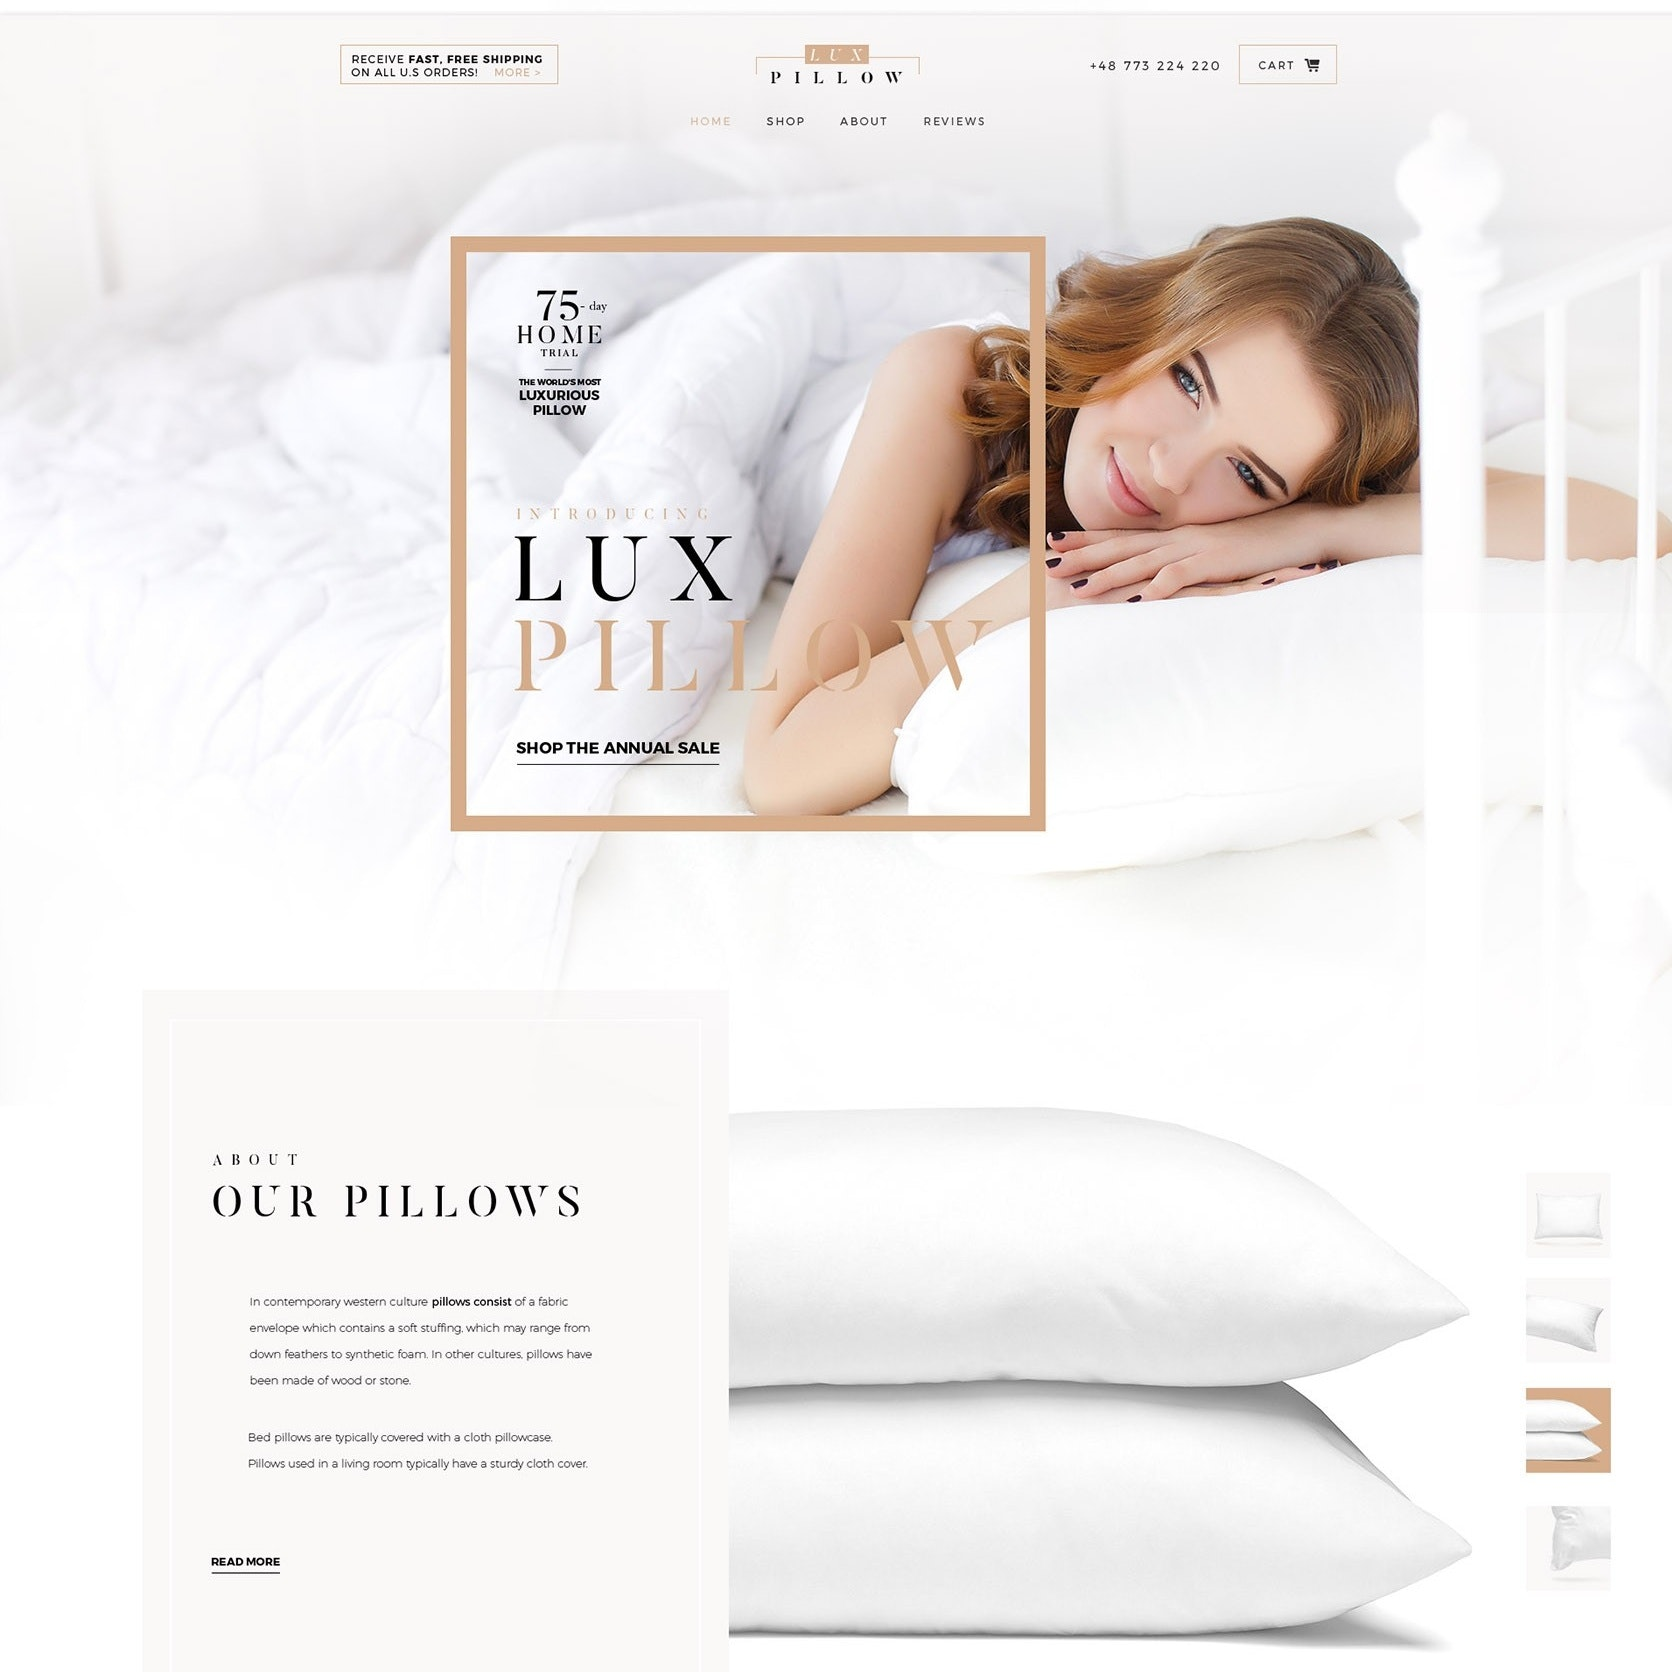 Pillow website design